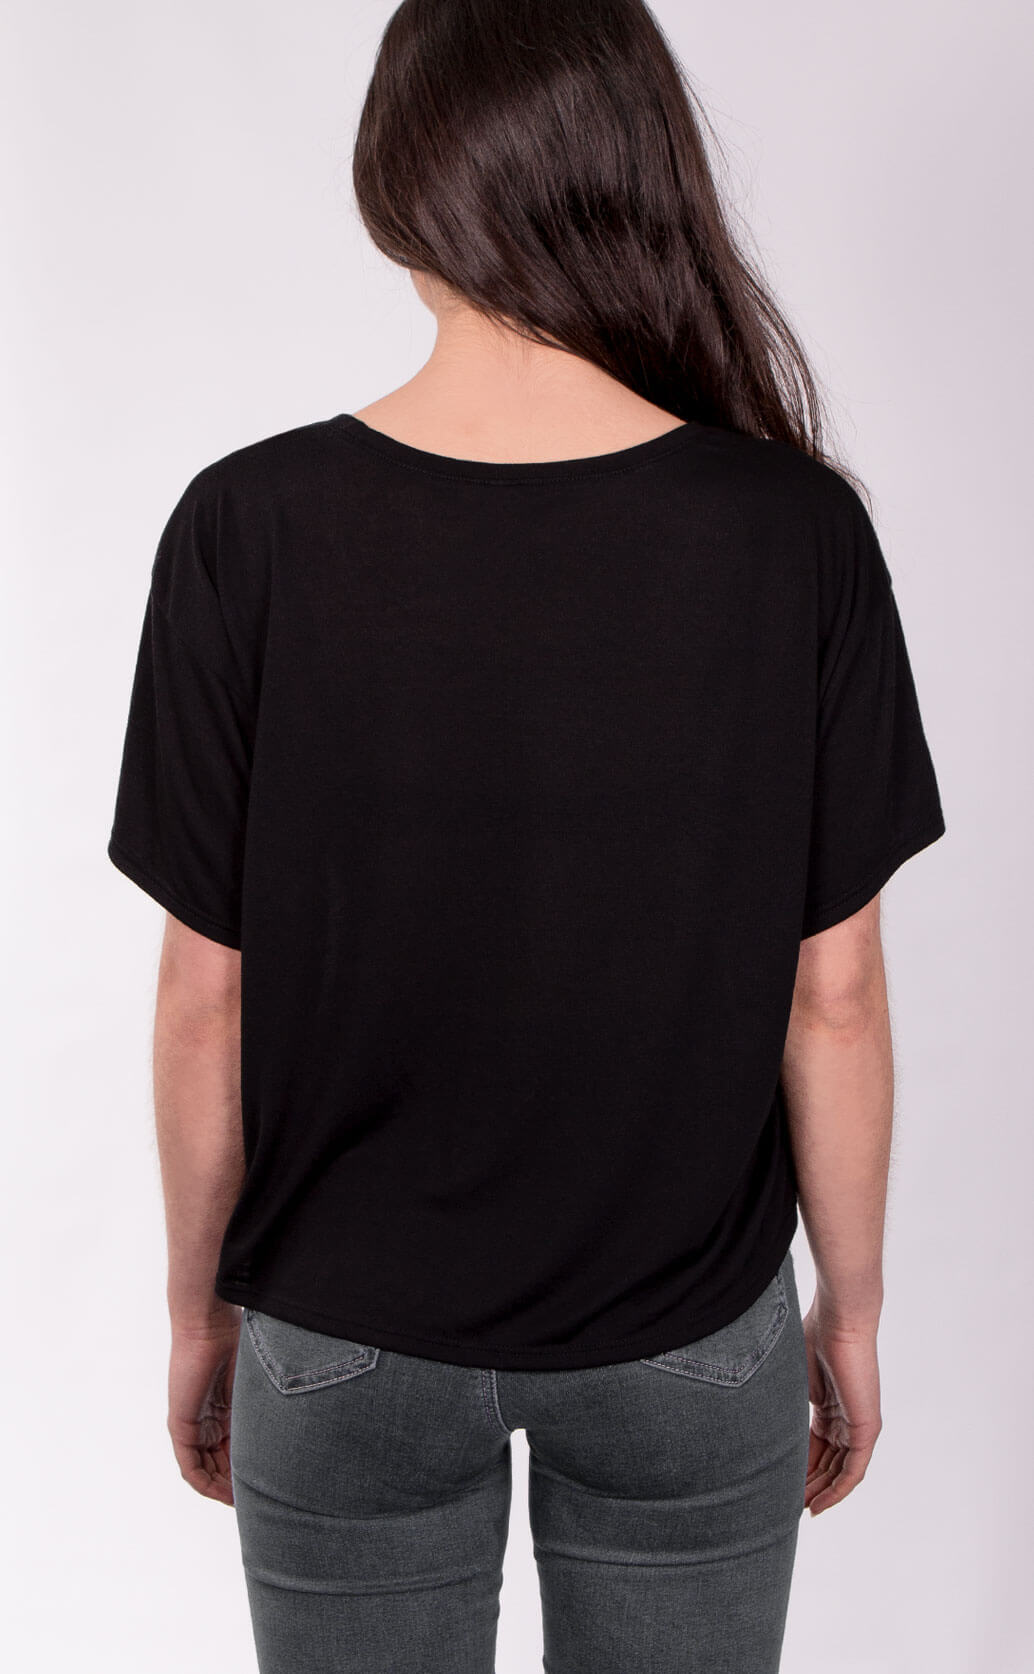 Size guide image for Flowy Boxy Tee shirt type. Shot from the back. Model is dressed in black